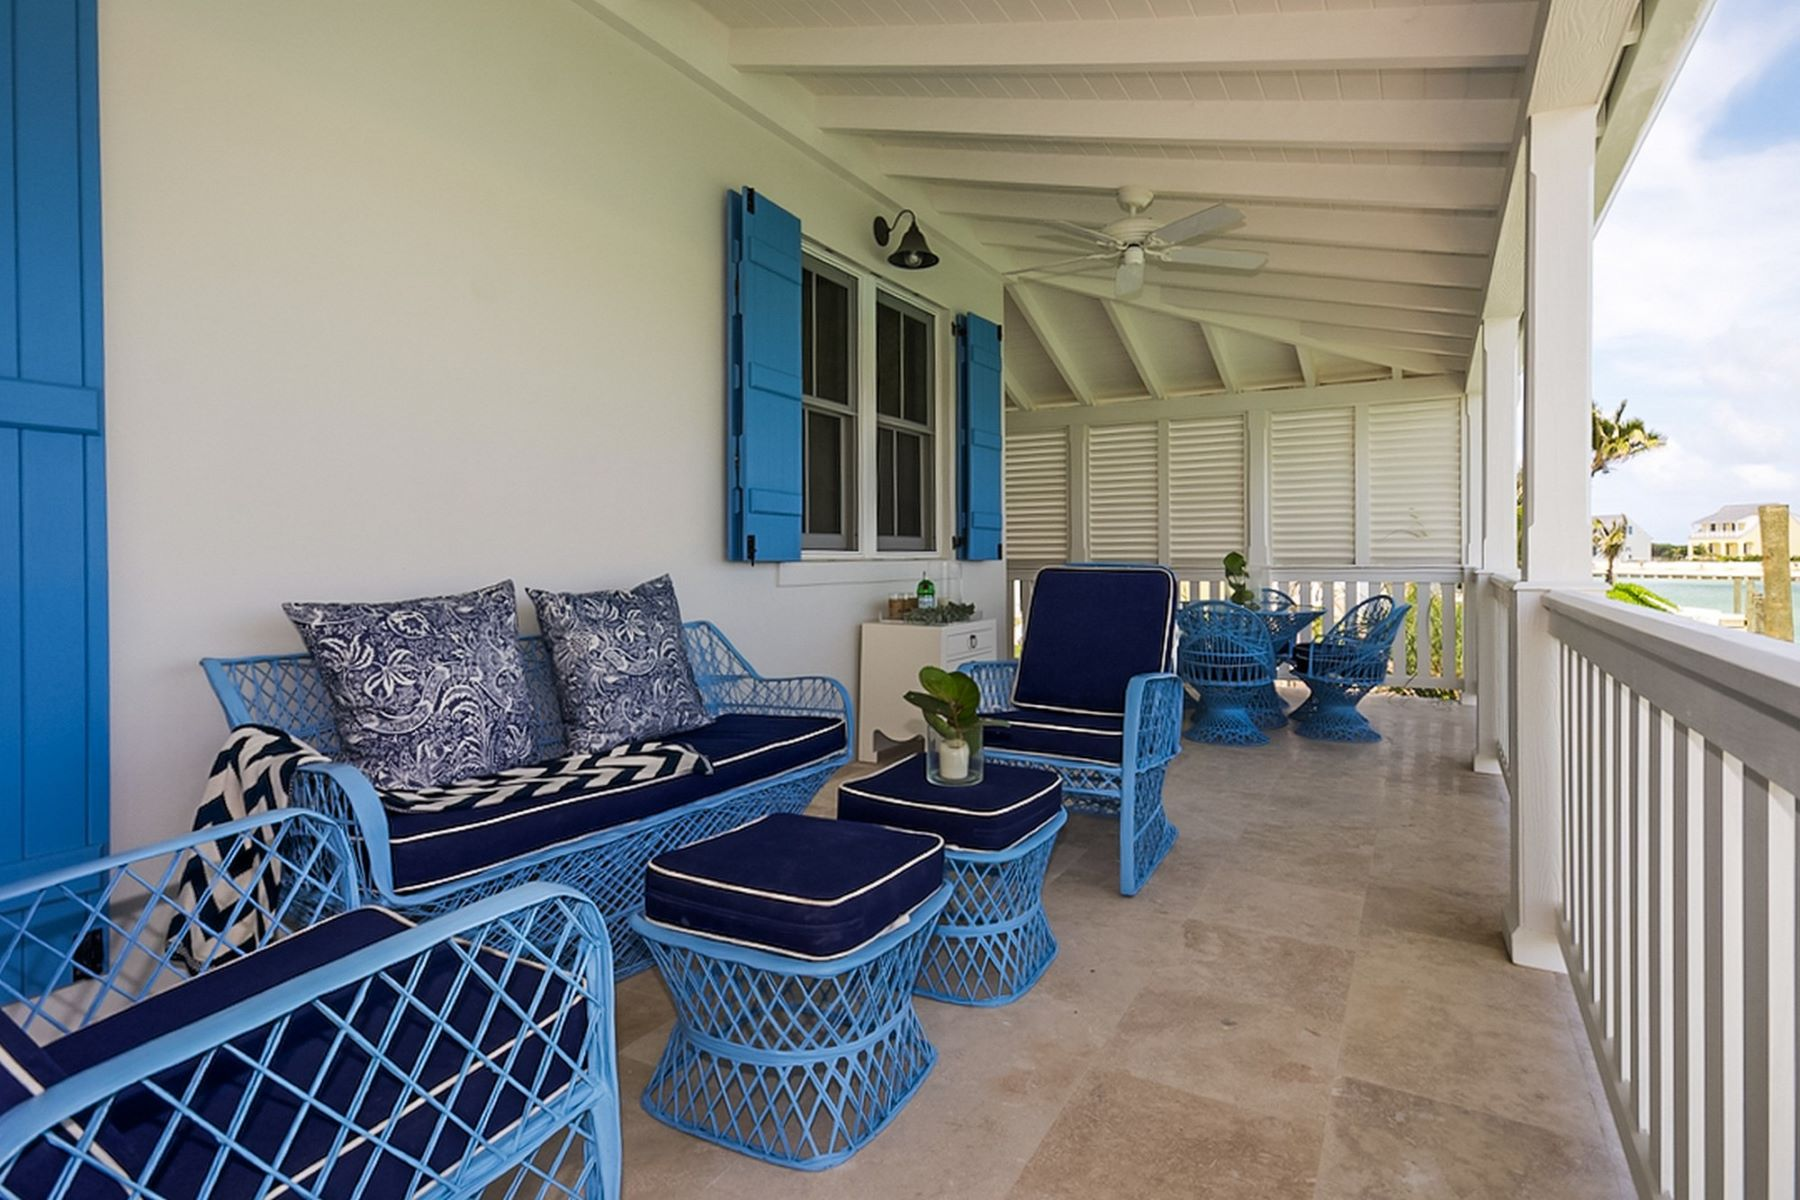 Additional photo for property listing at Carioca Cottage, The Island at Schooner Bay Village Schooner Bay, Abaco Bahamas